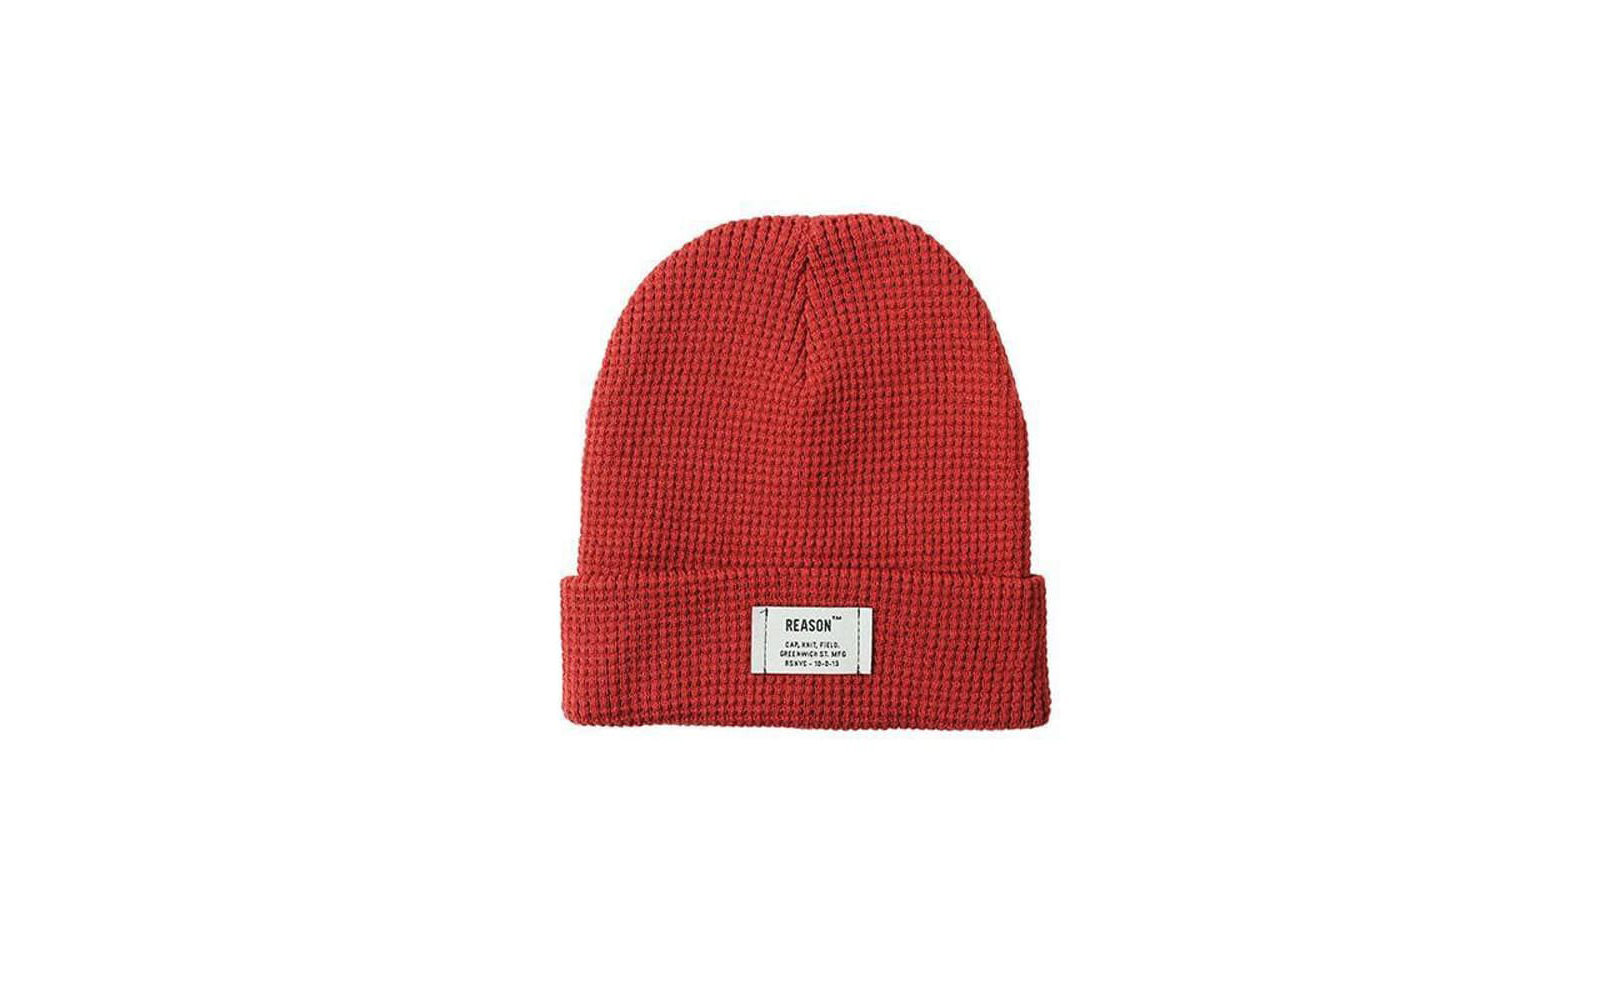 Reason Clothing Beanie